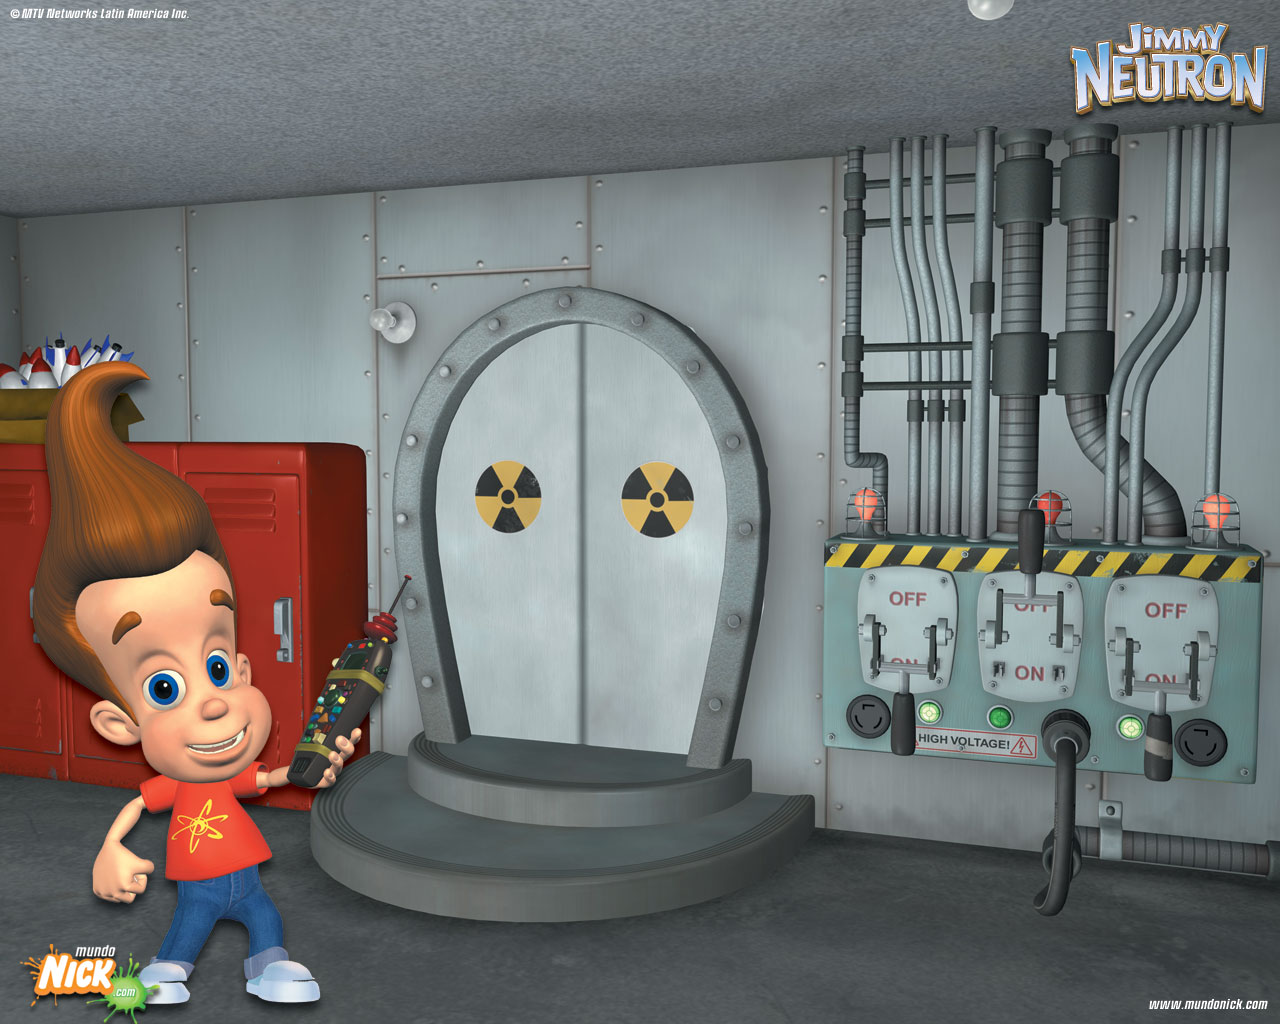 List Of Jimmy Neutrons Inventions Jimmy Neutron Wiki Fandom